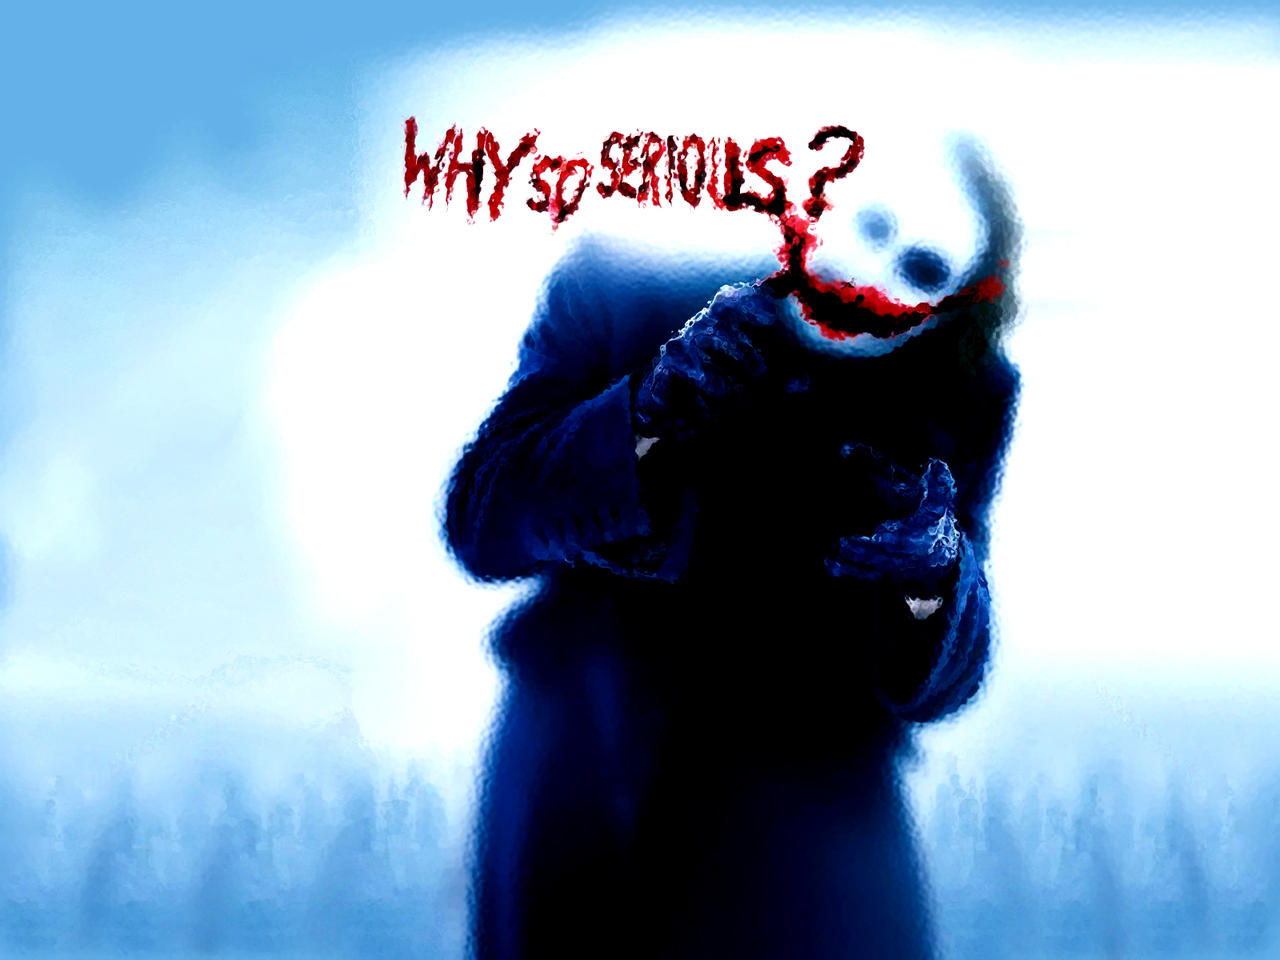 why so serious? by amnaroth on DeviantArt